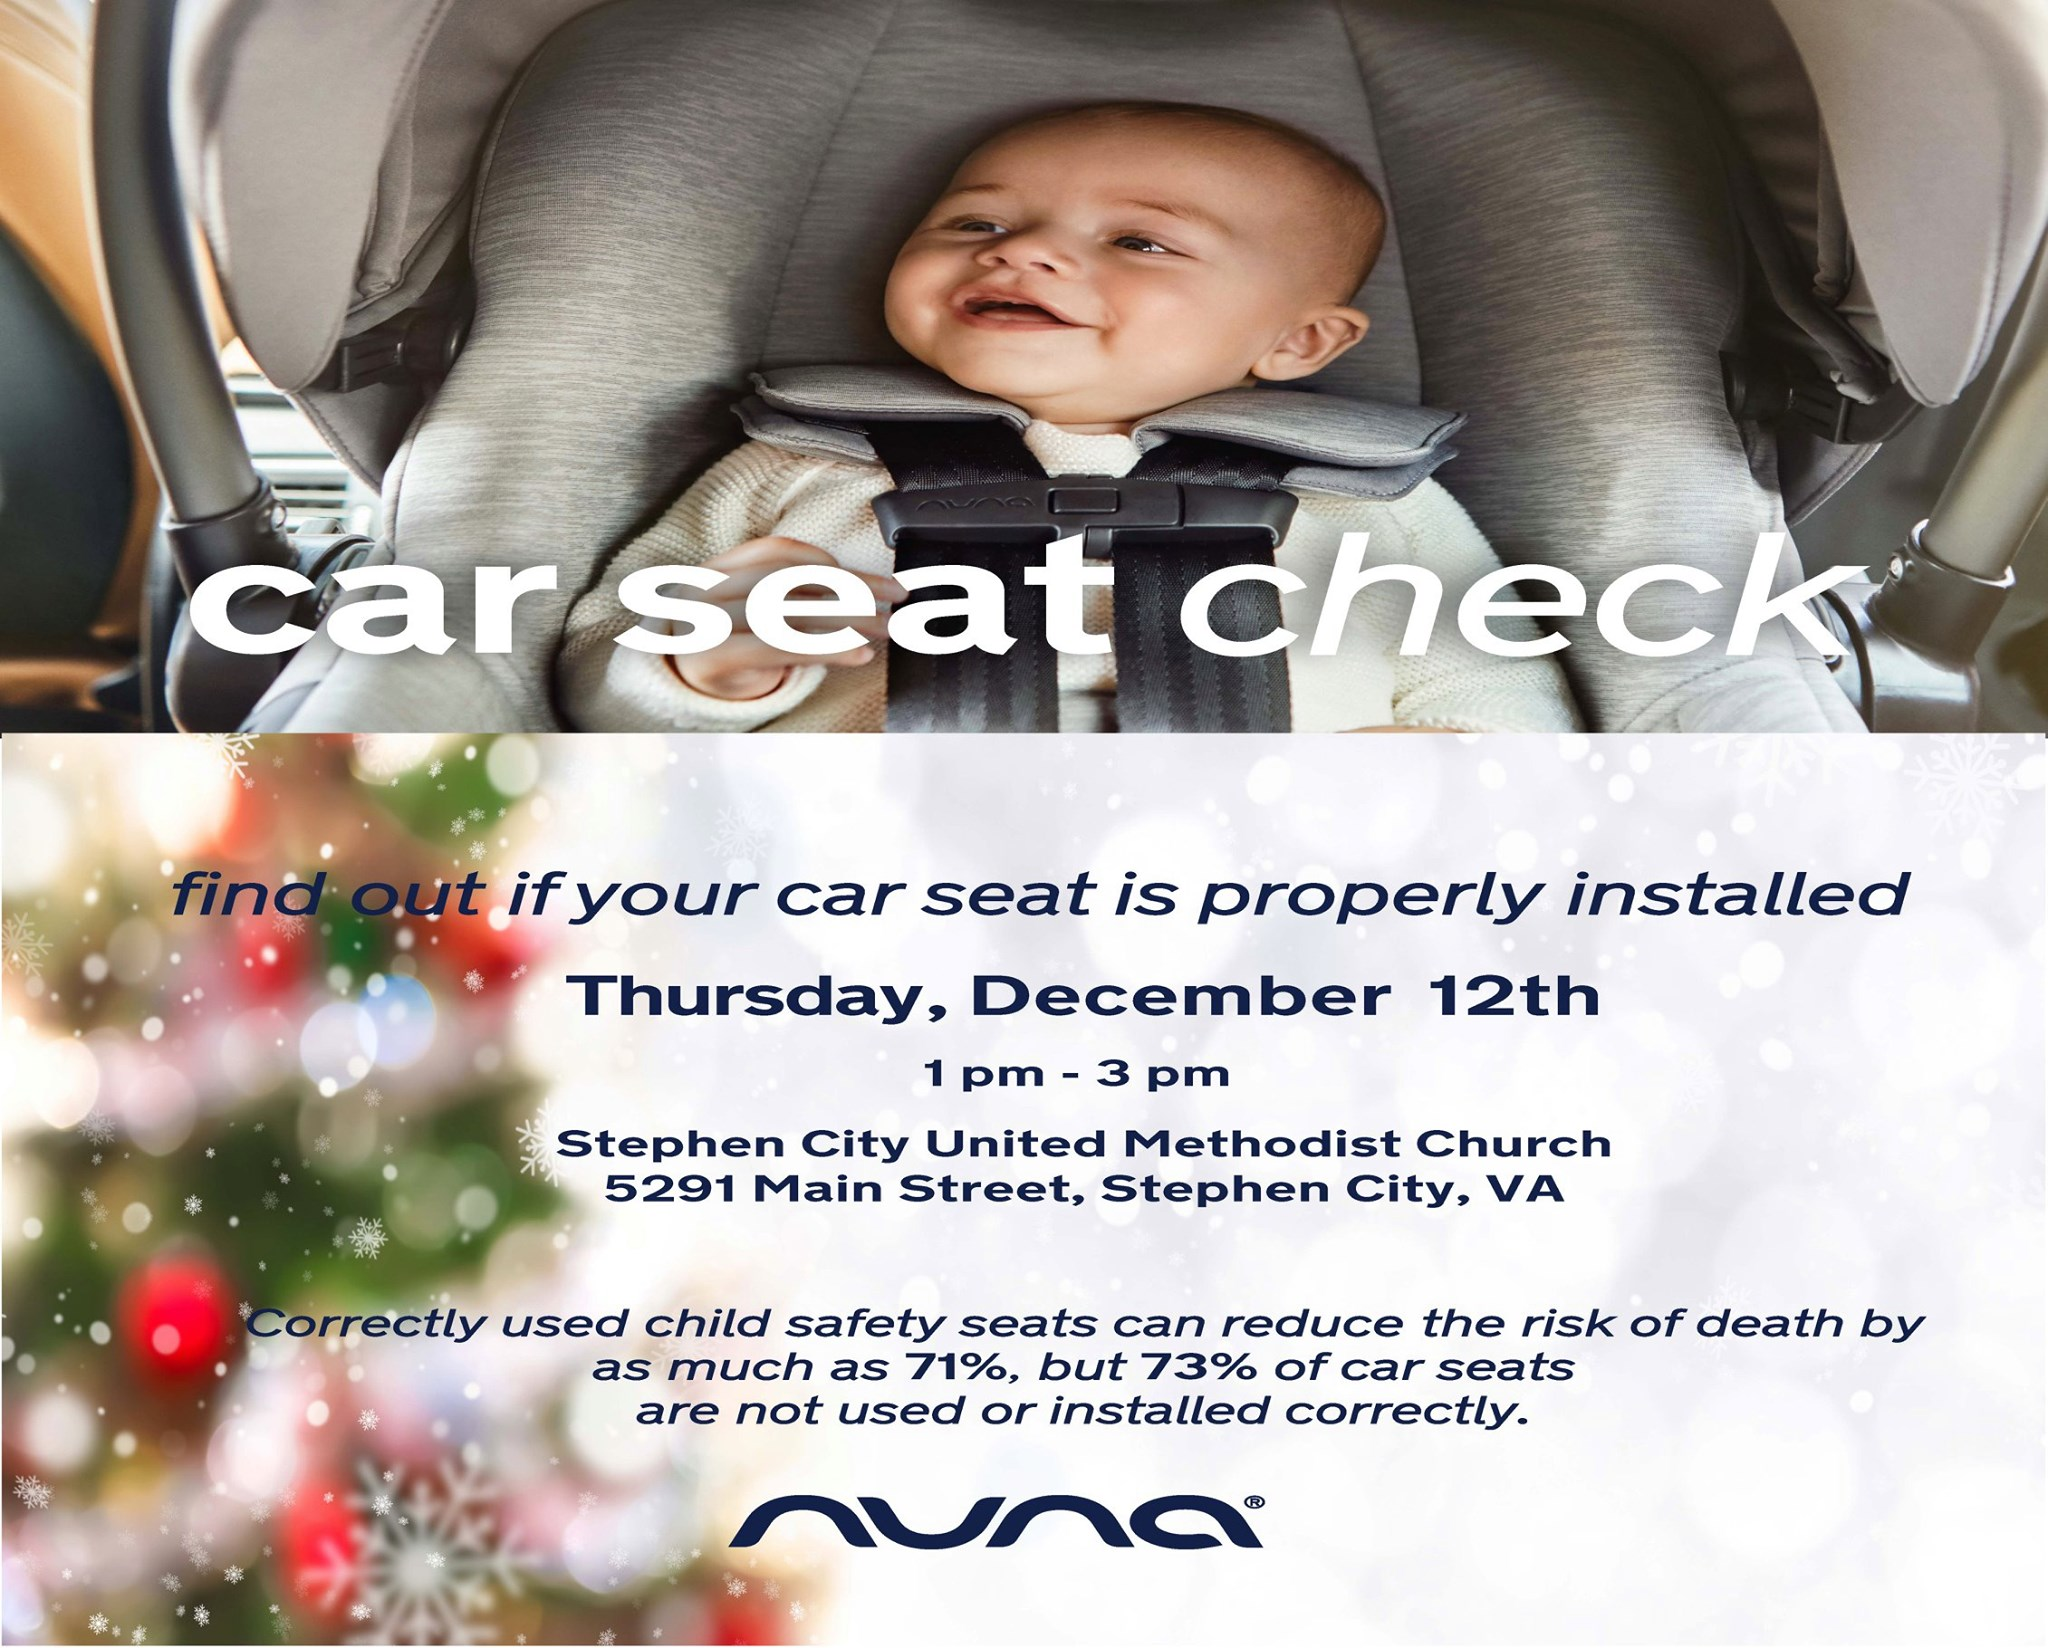 Our friends at Nuna are putting on a free car seat check event on Thursday, December 12th from 1 PM – 3 PM.  Come make sure your children are riding as safely as possible!